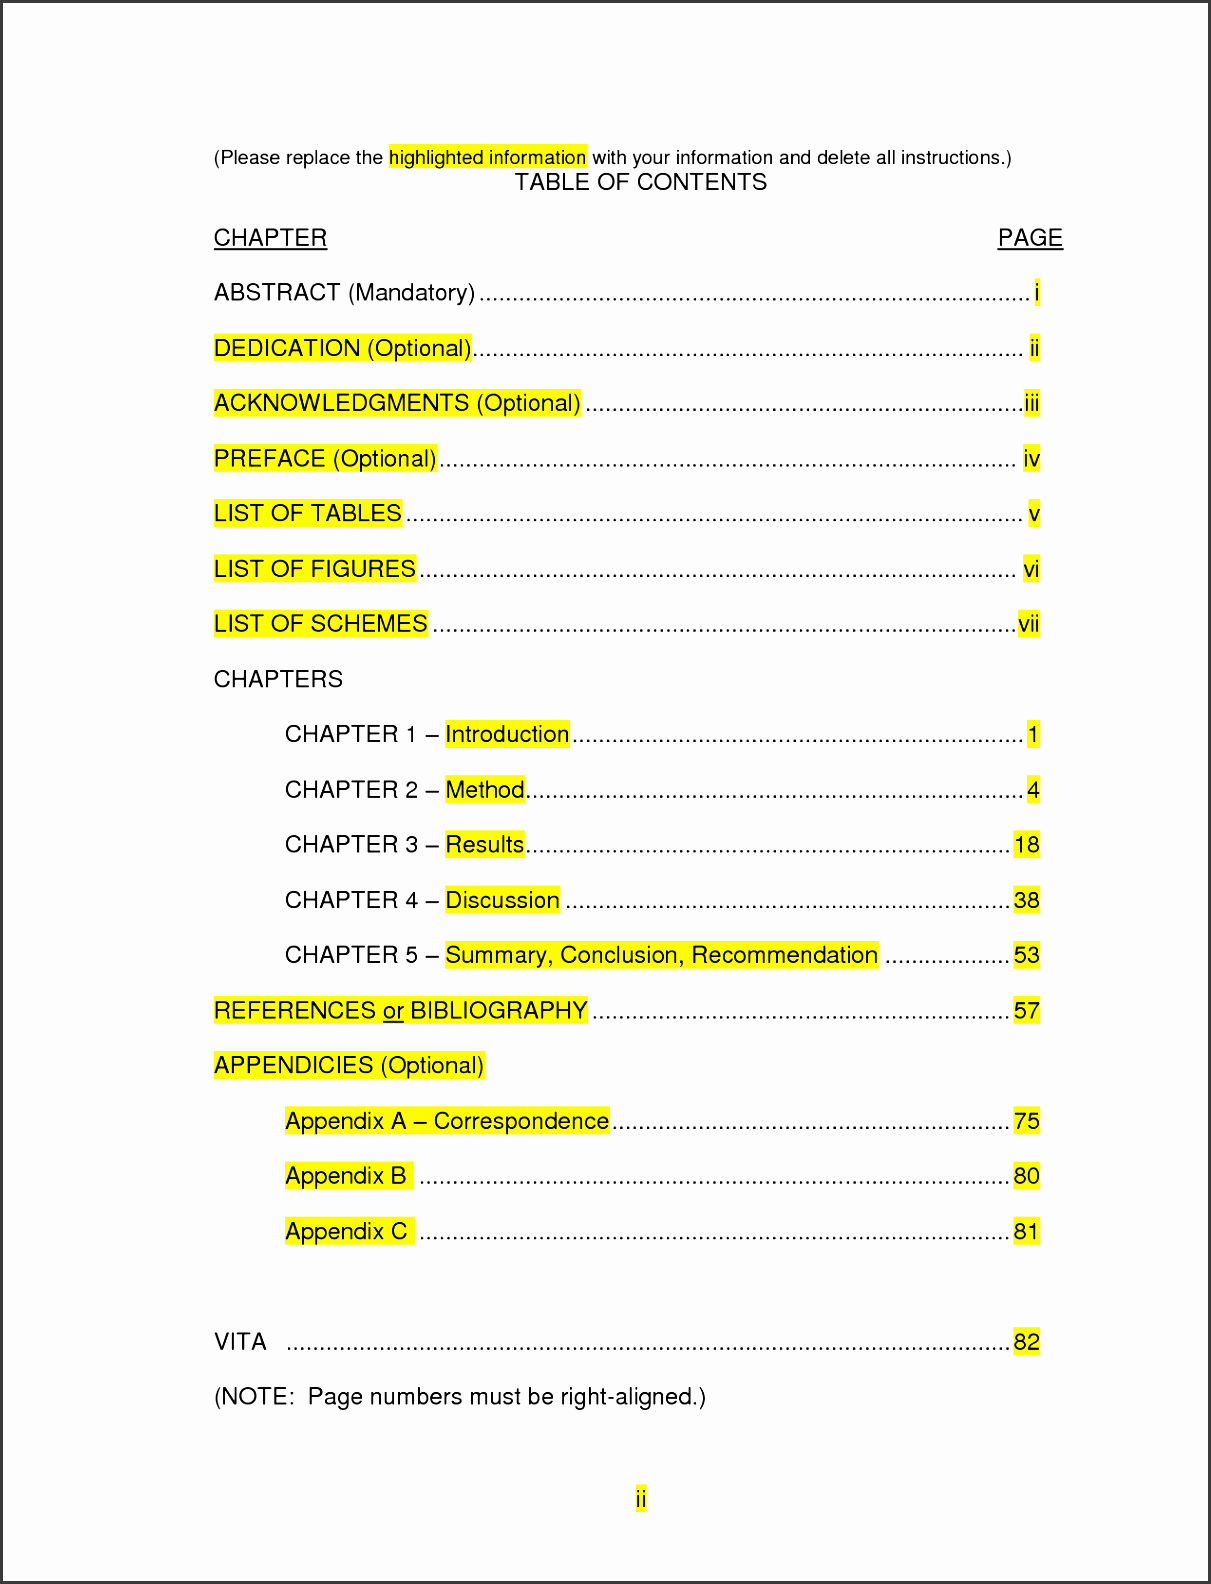 table of contents template word a9acxcrg